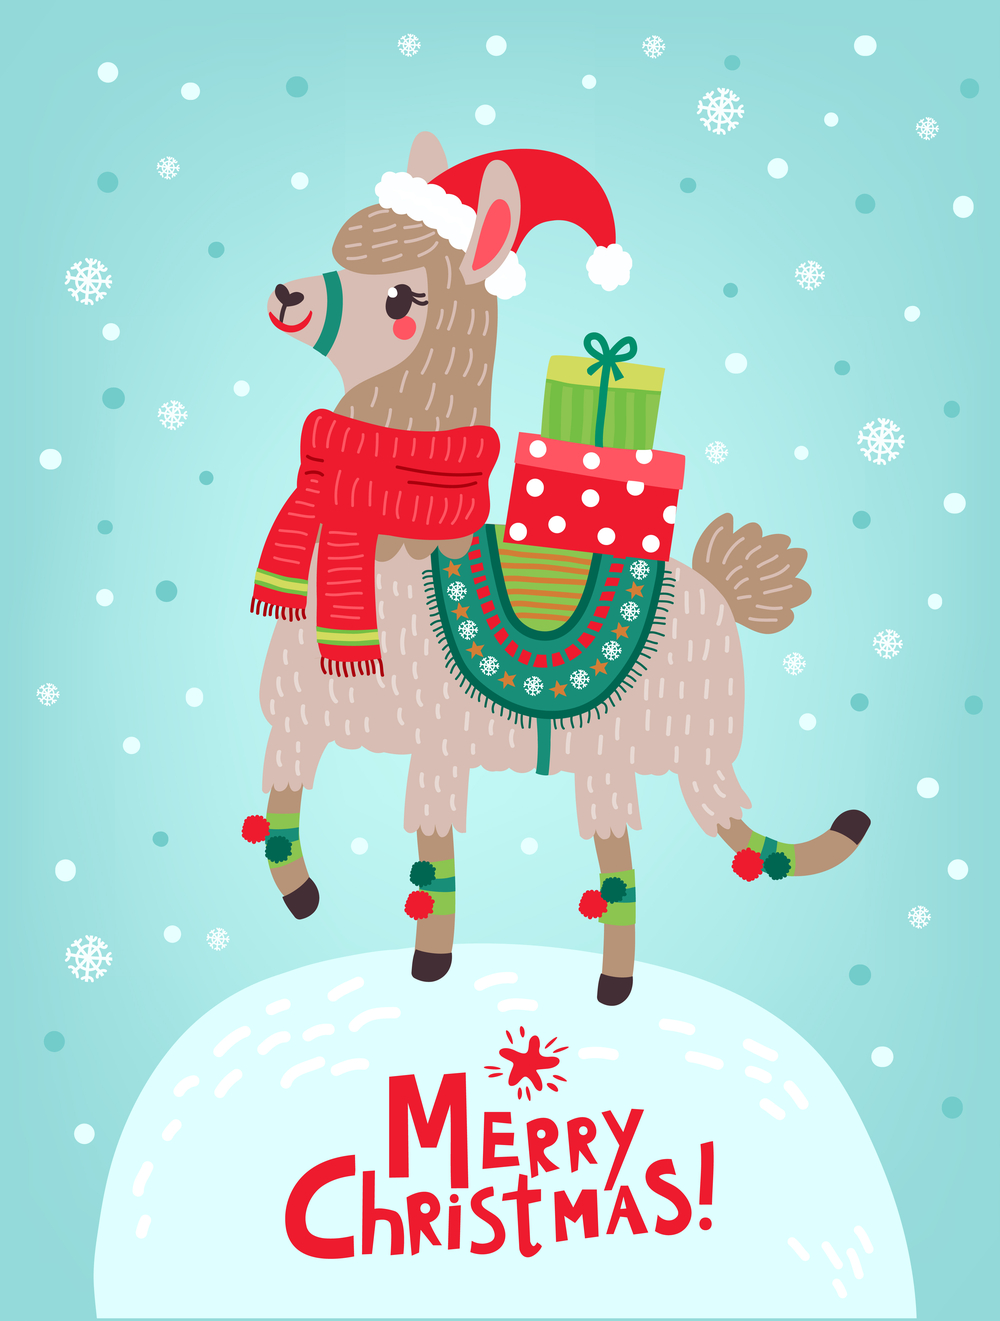 """A llama dressed up for Christmas with presents on his back, standing on a snow hill with a text overlay reading """"Merry Christmas""""."""